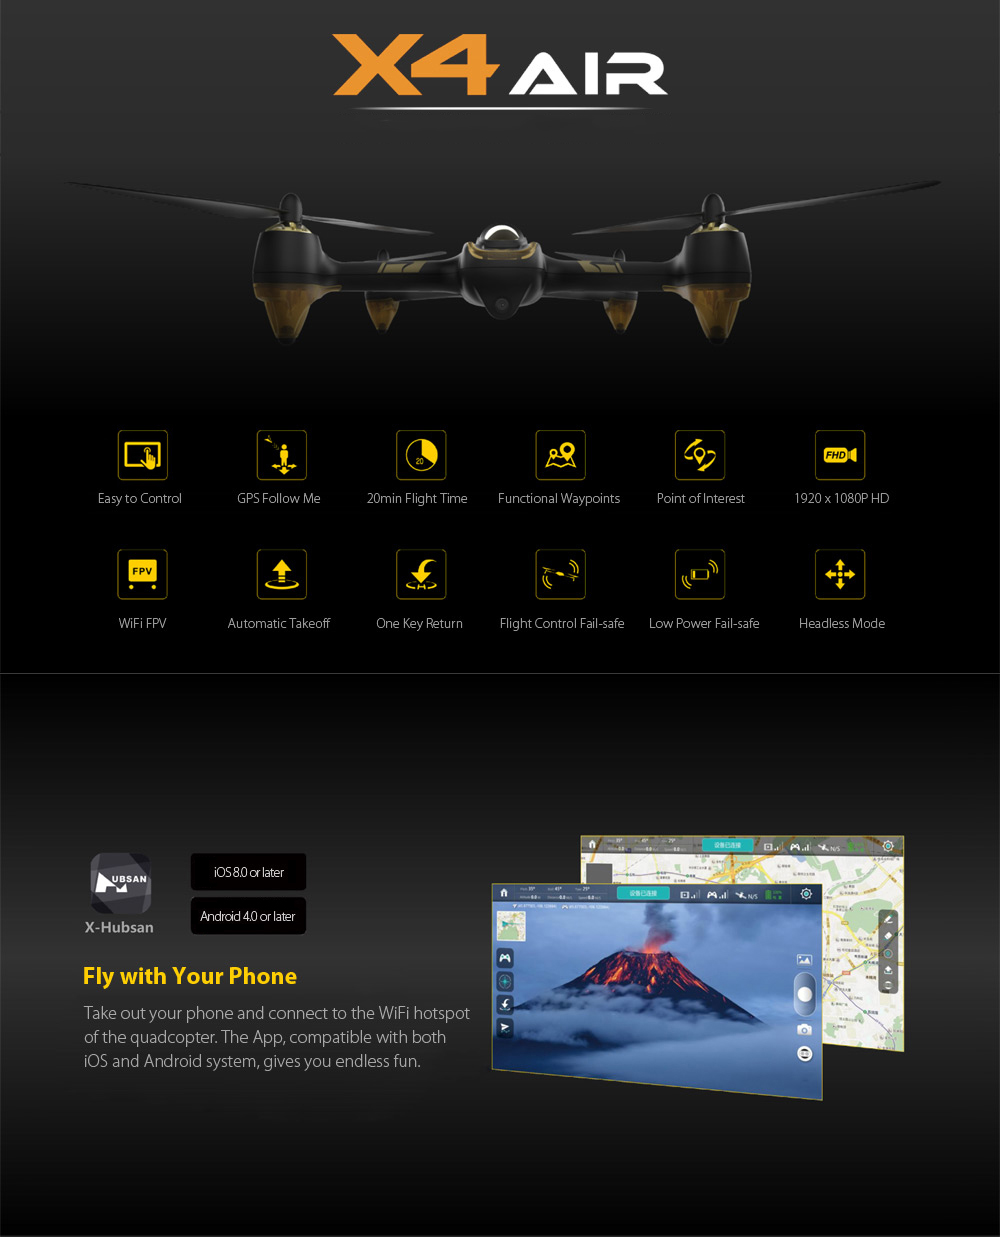 HUBSAN X4 AIR H501A RC Drone BNF WiFi FPV 1080P HD / Point of Interest / GPS Follow Me